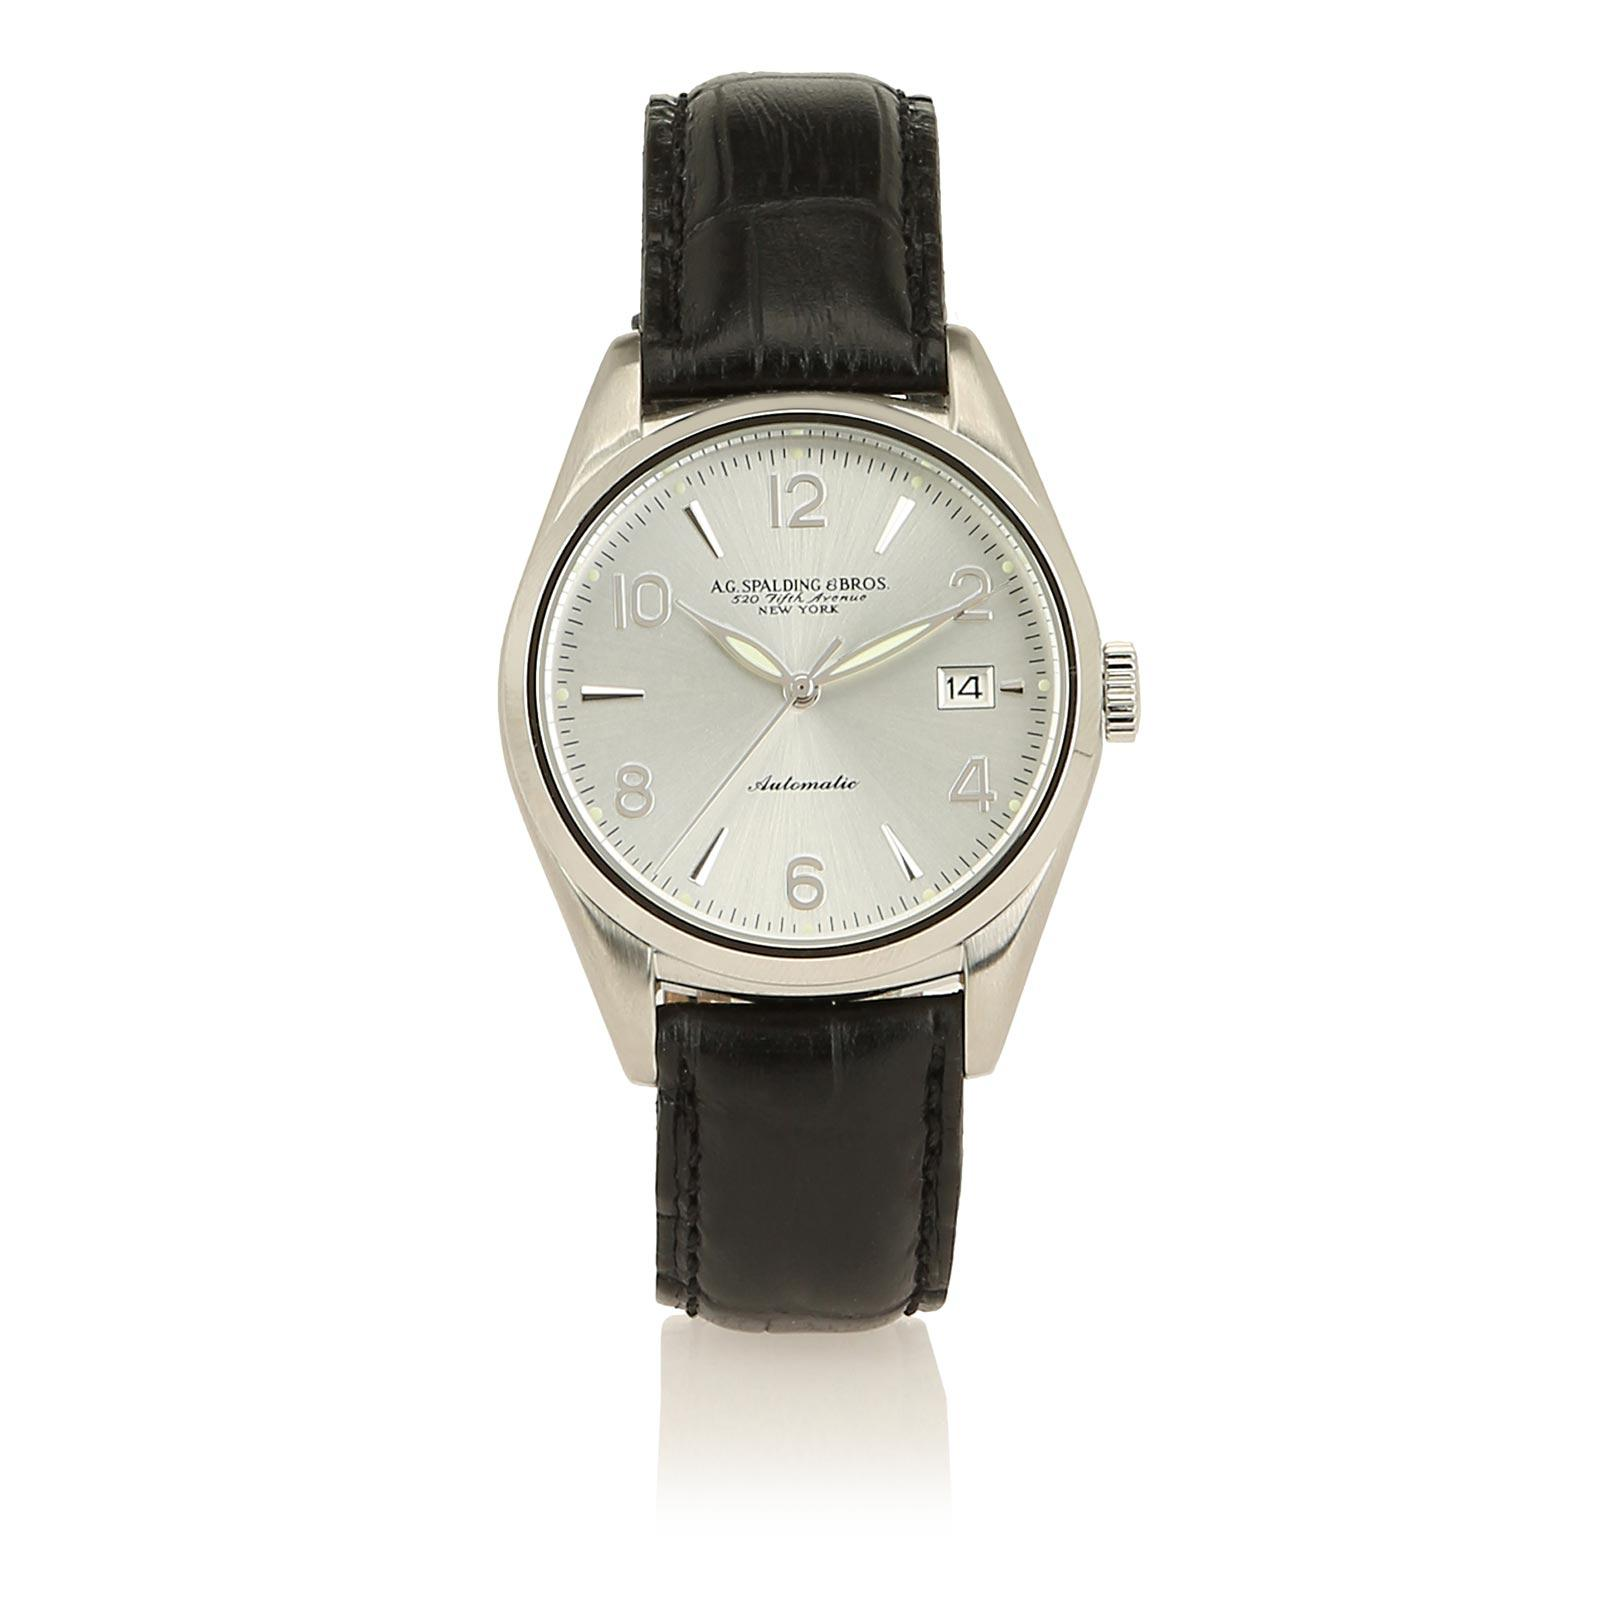 New Prince Automatic SILVER